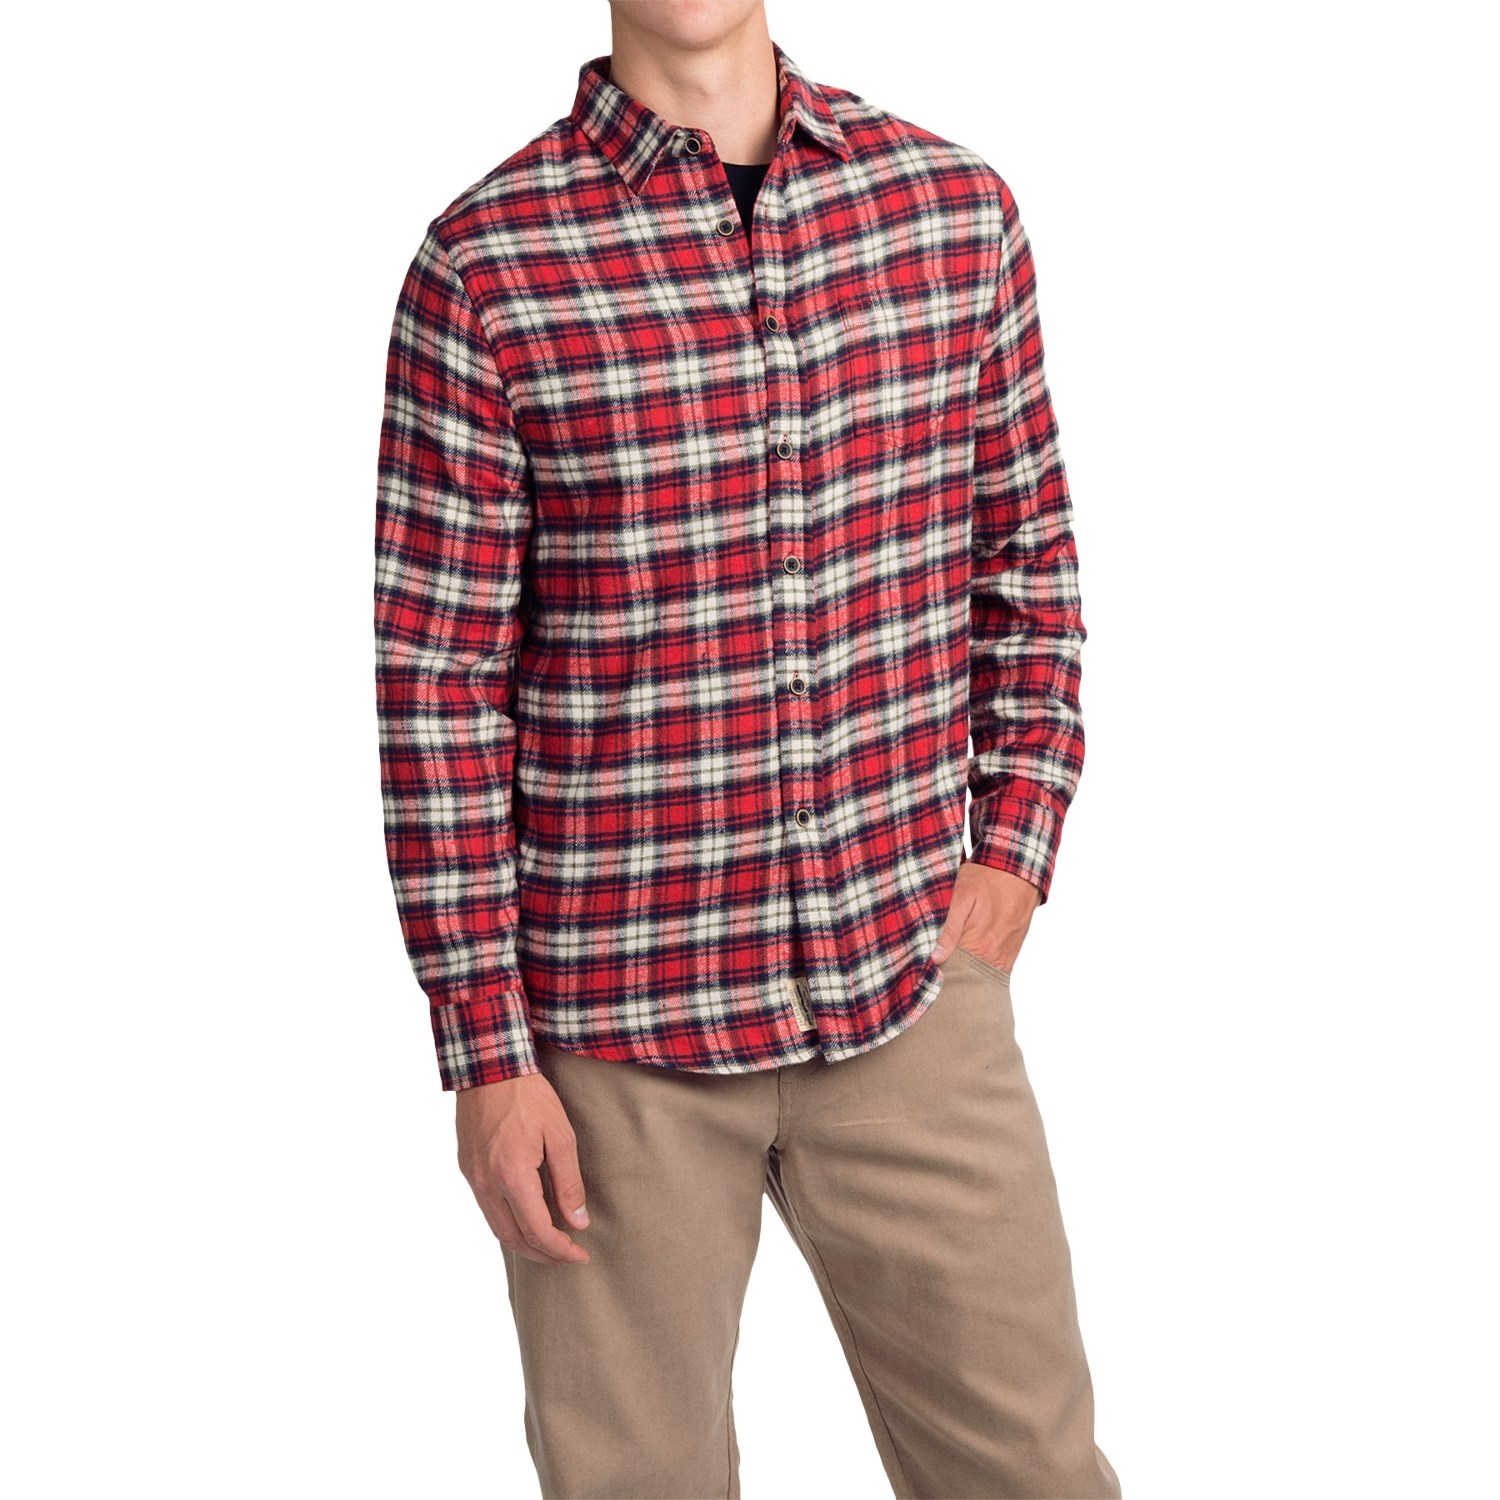 J A C H S Plaid Flannel Shirt For Men Save 71